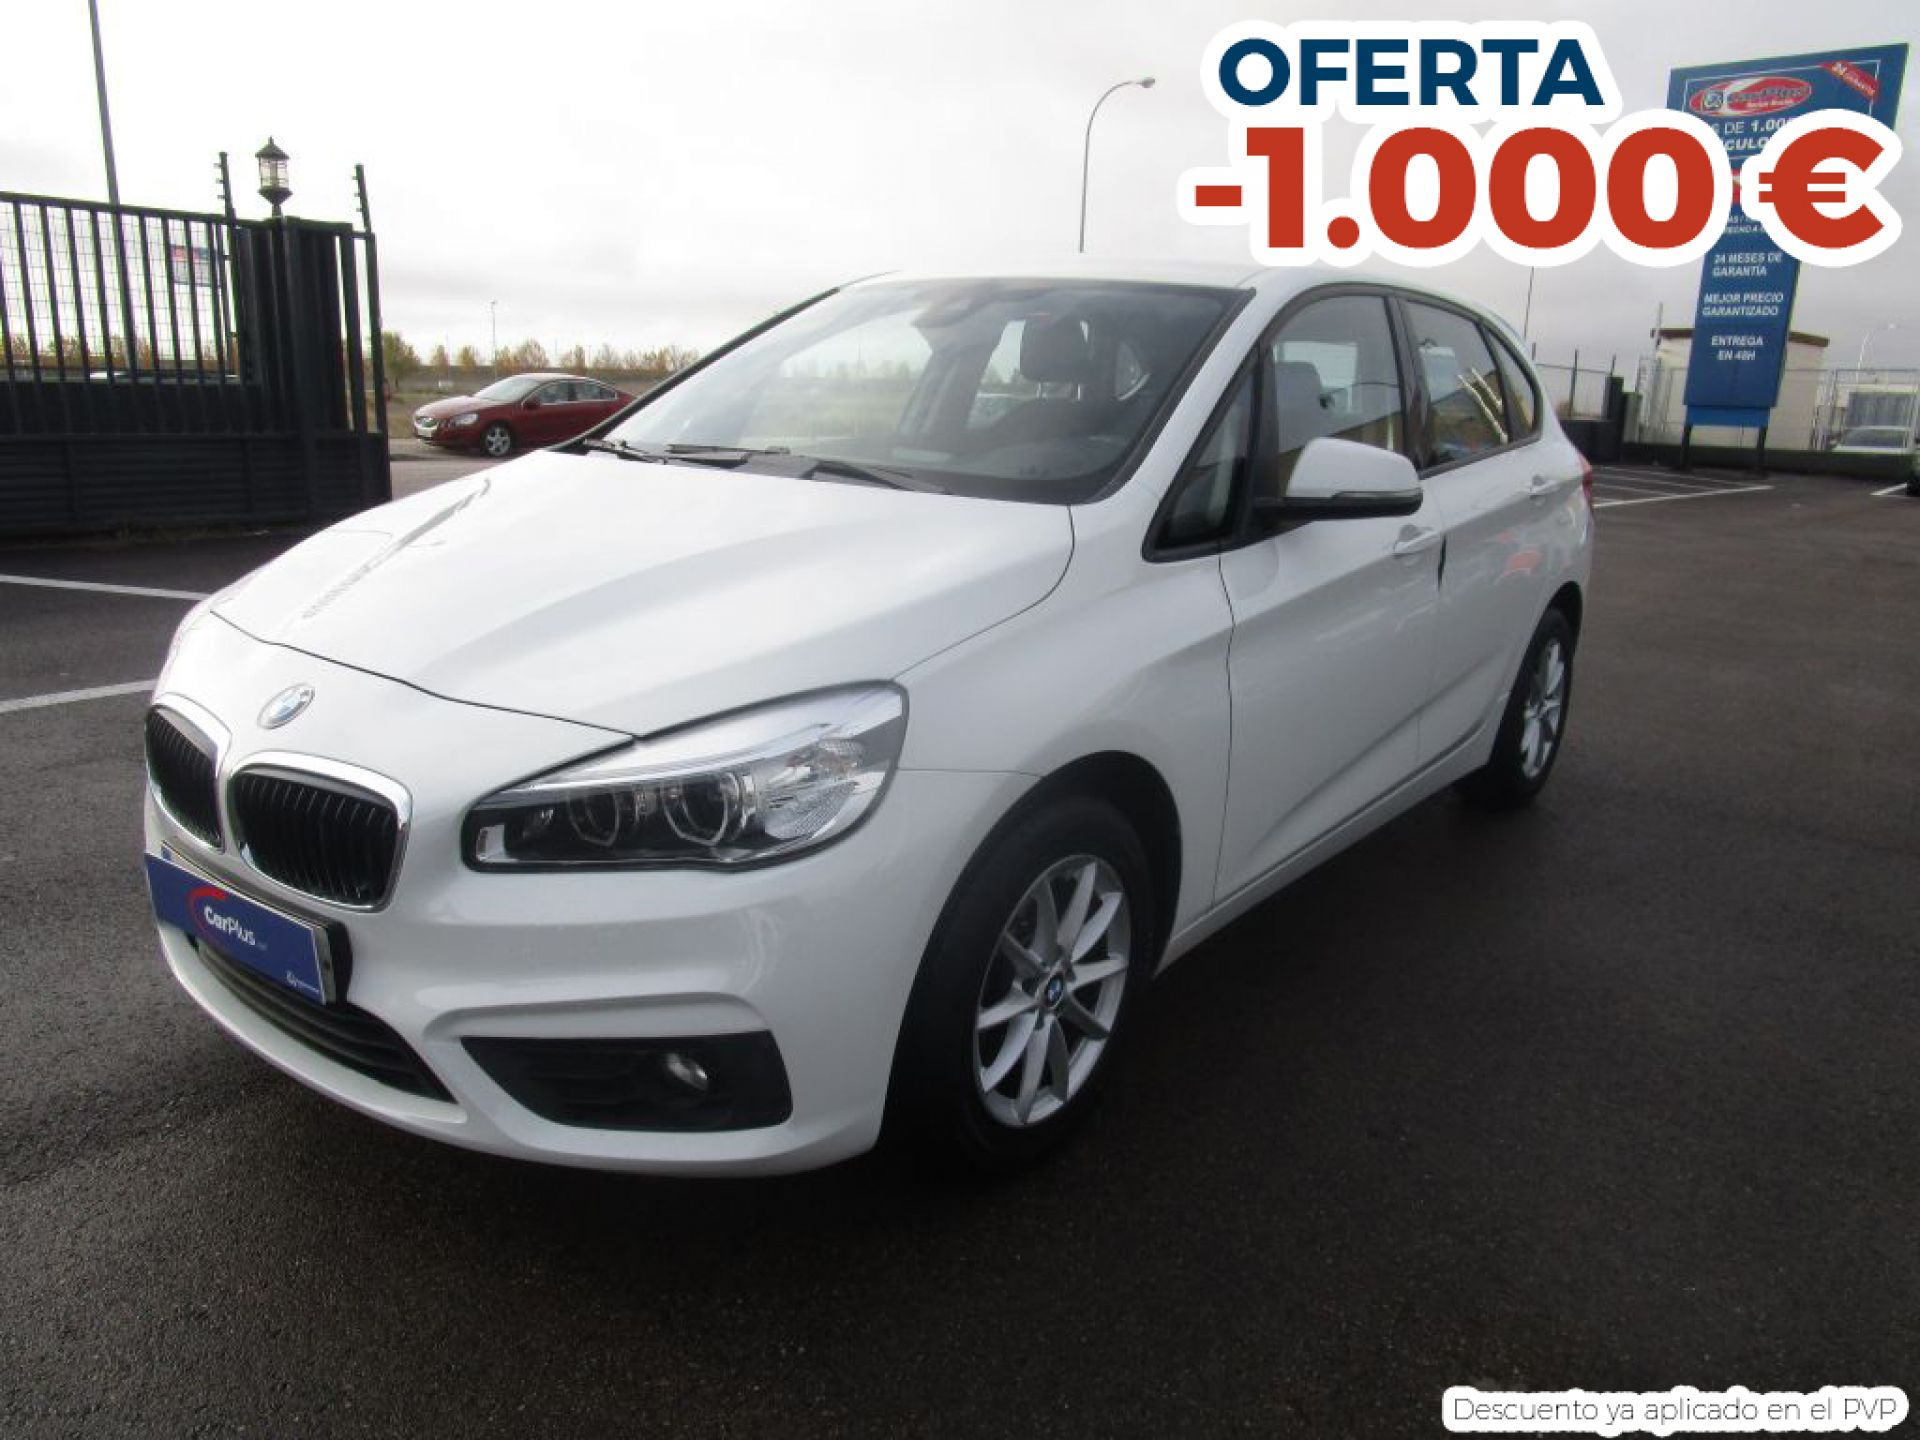 BMW Serie 2 Active Tourer 216dA segunda mano Madrid